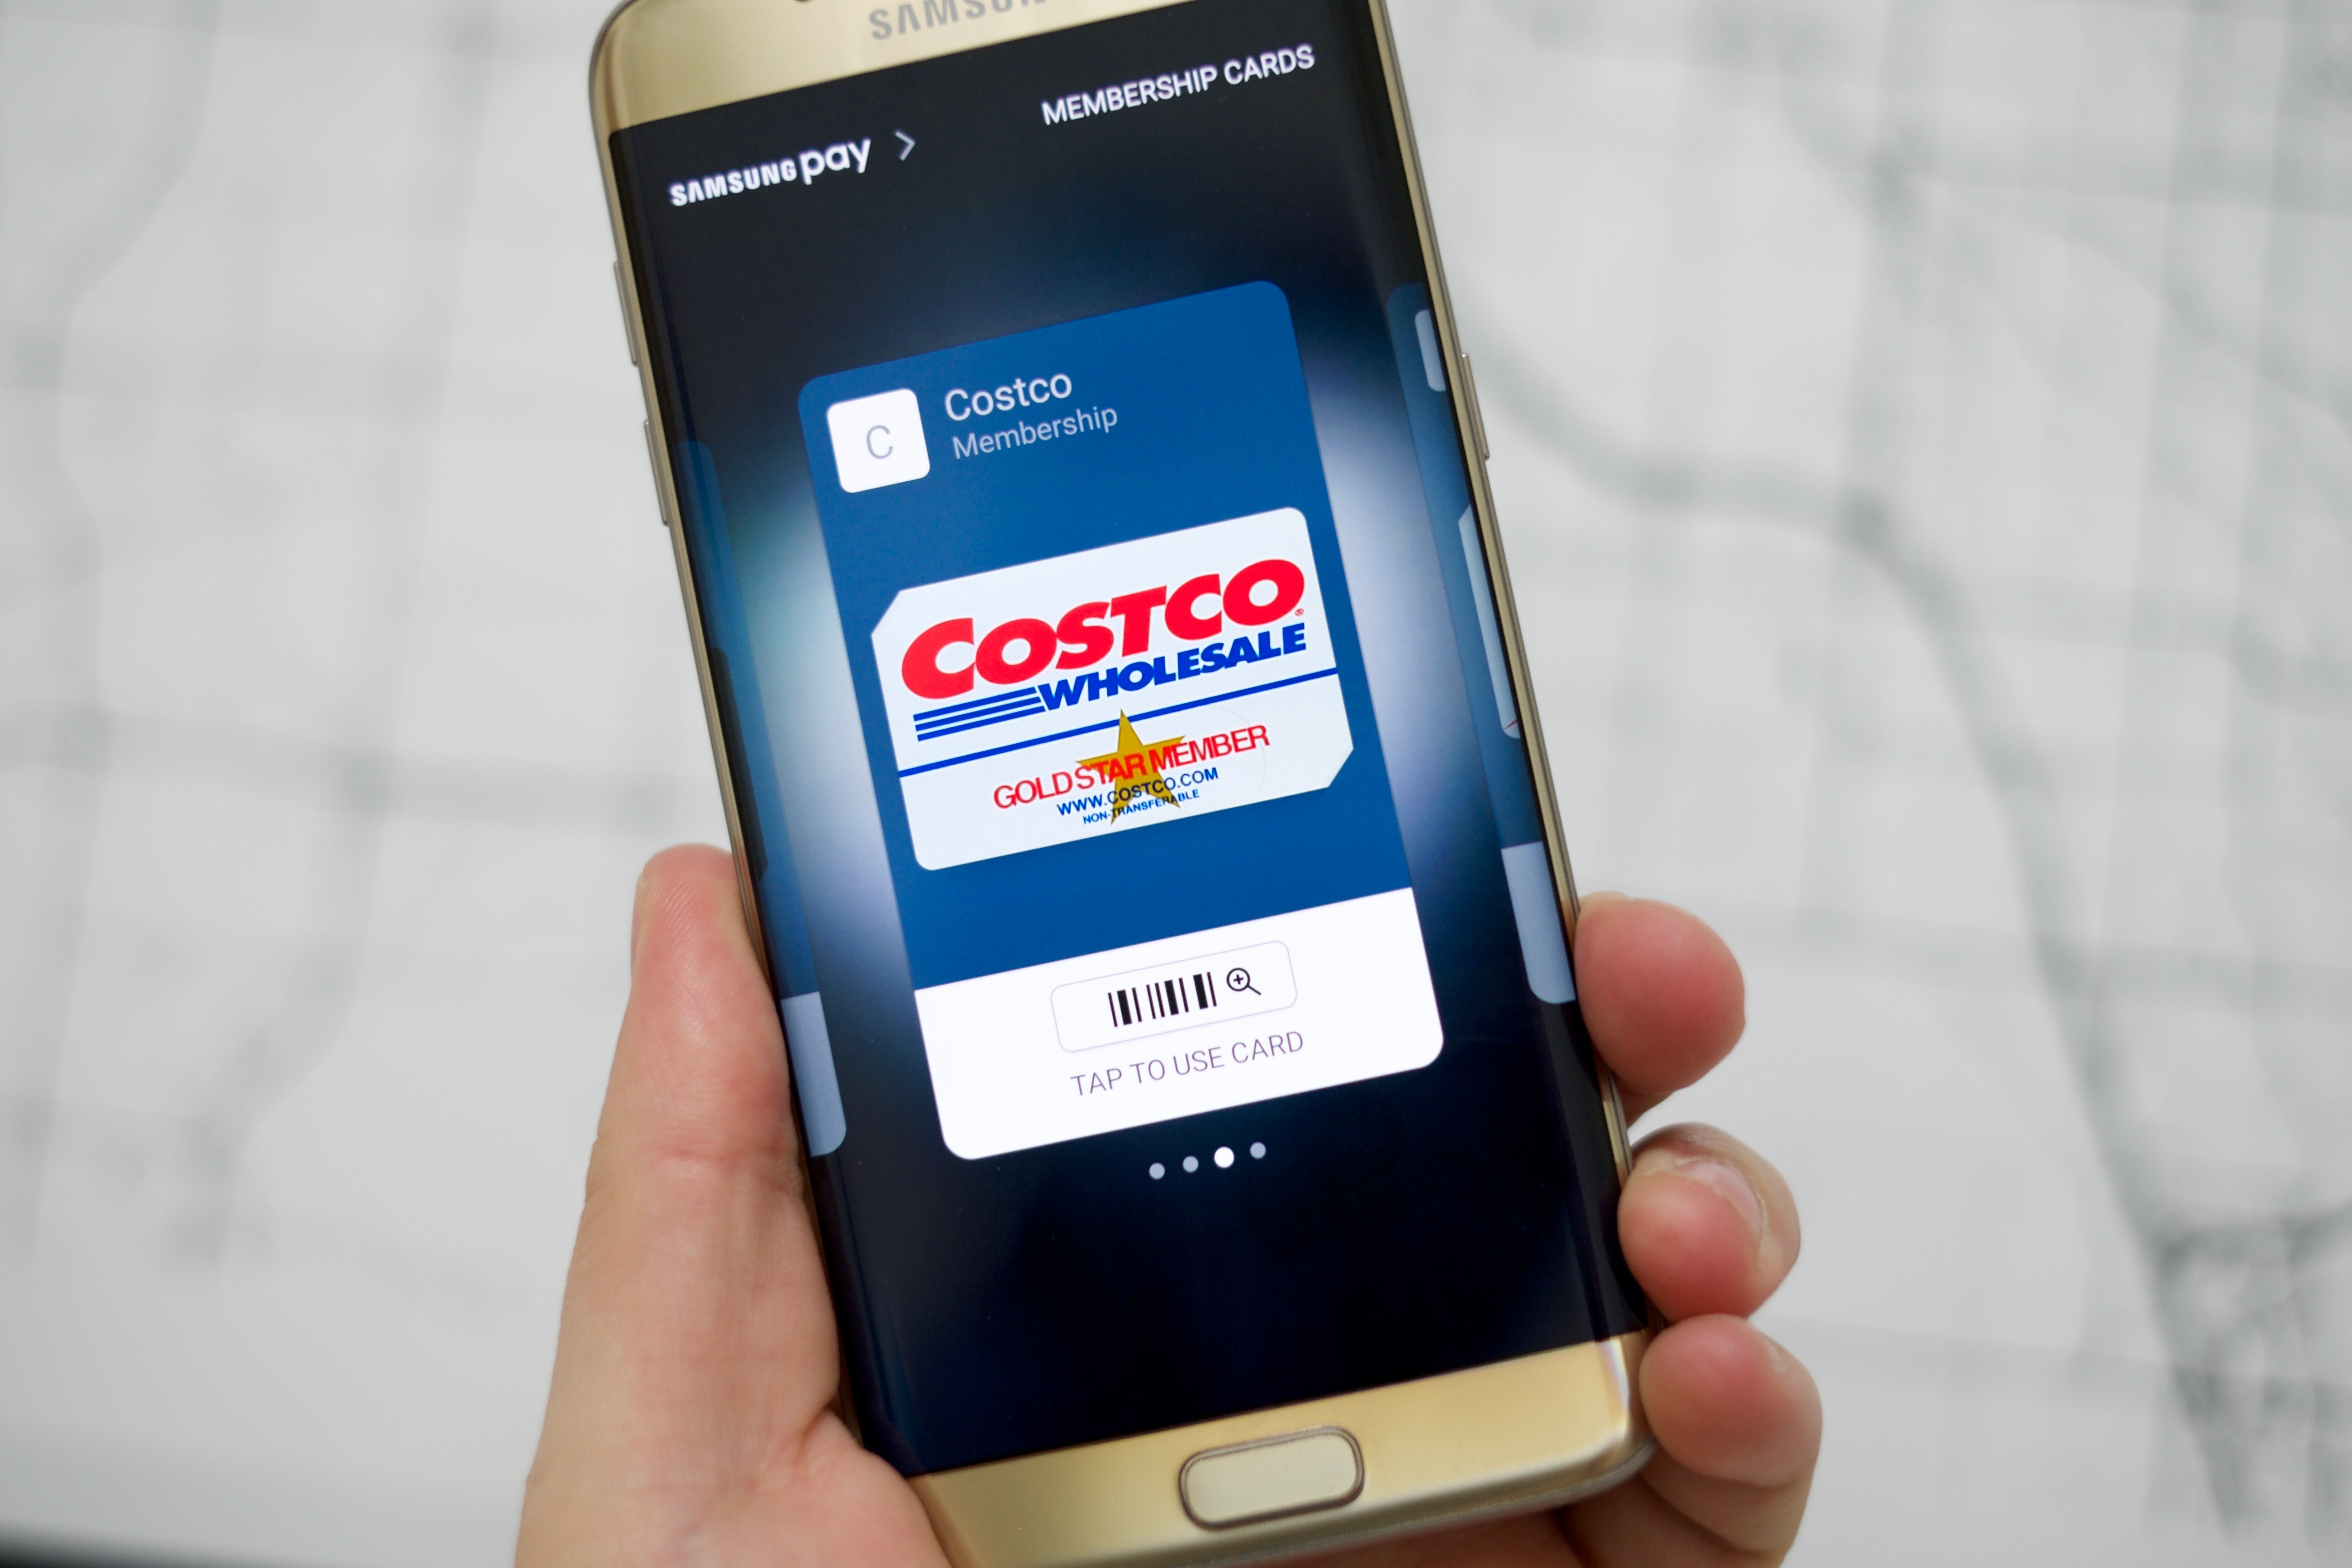 Samsung Pay lets you add loyalty cards to your mobile wallet.